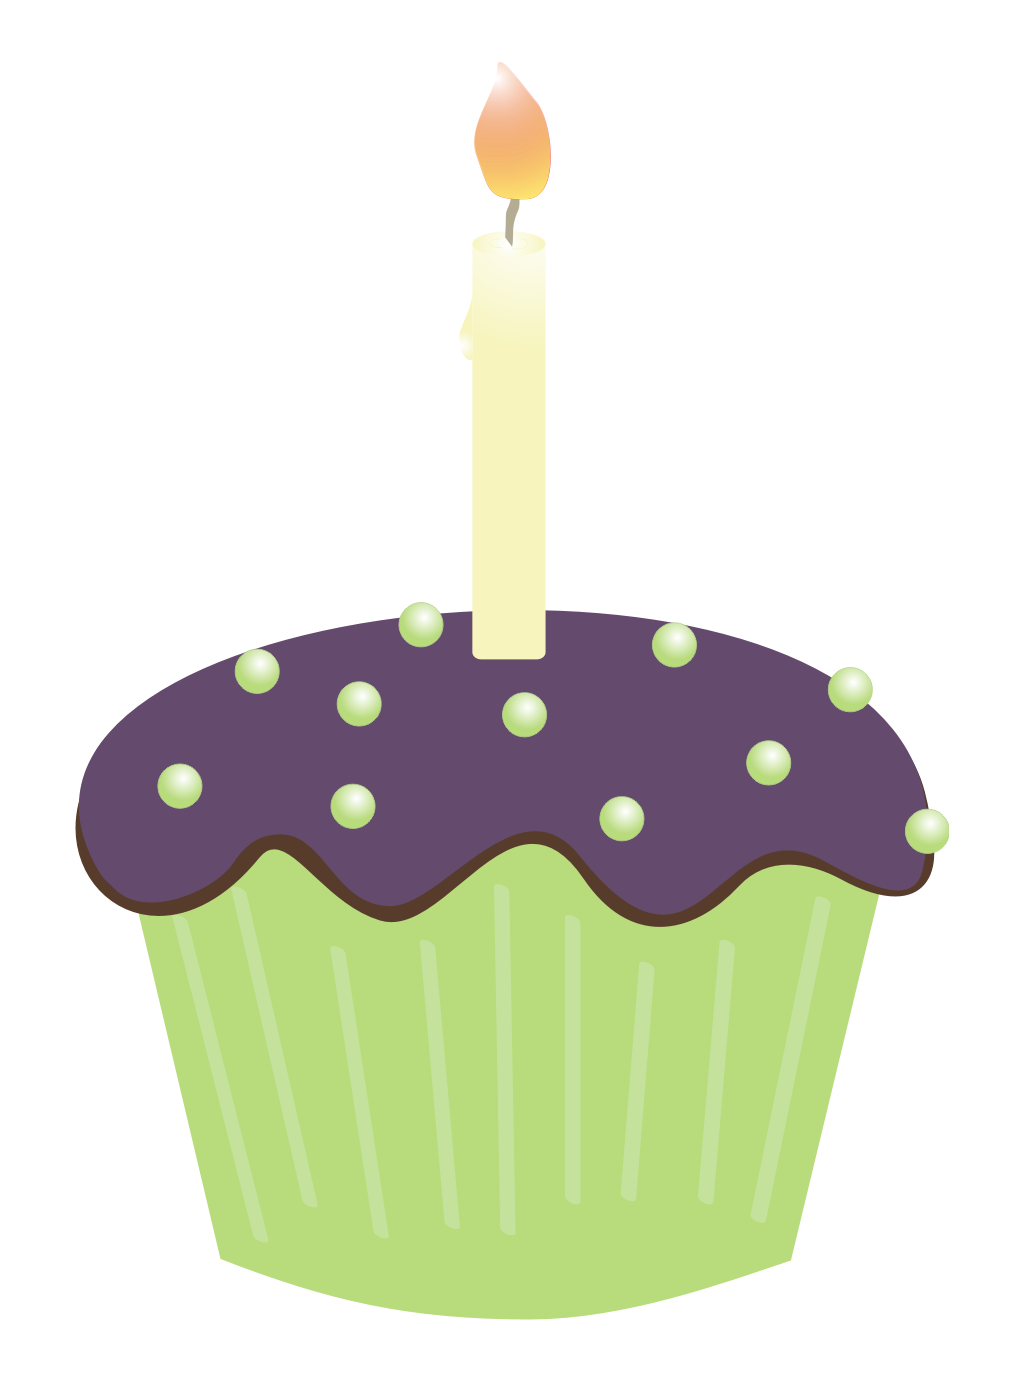 1020x1380 Muffin Clipart Candle